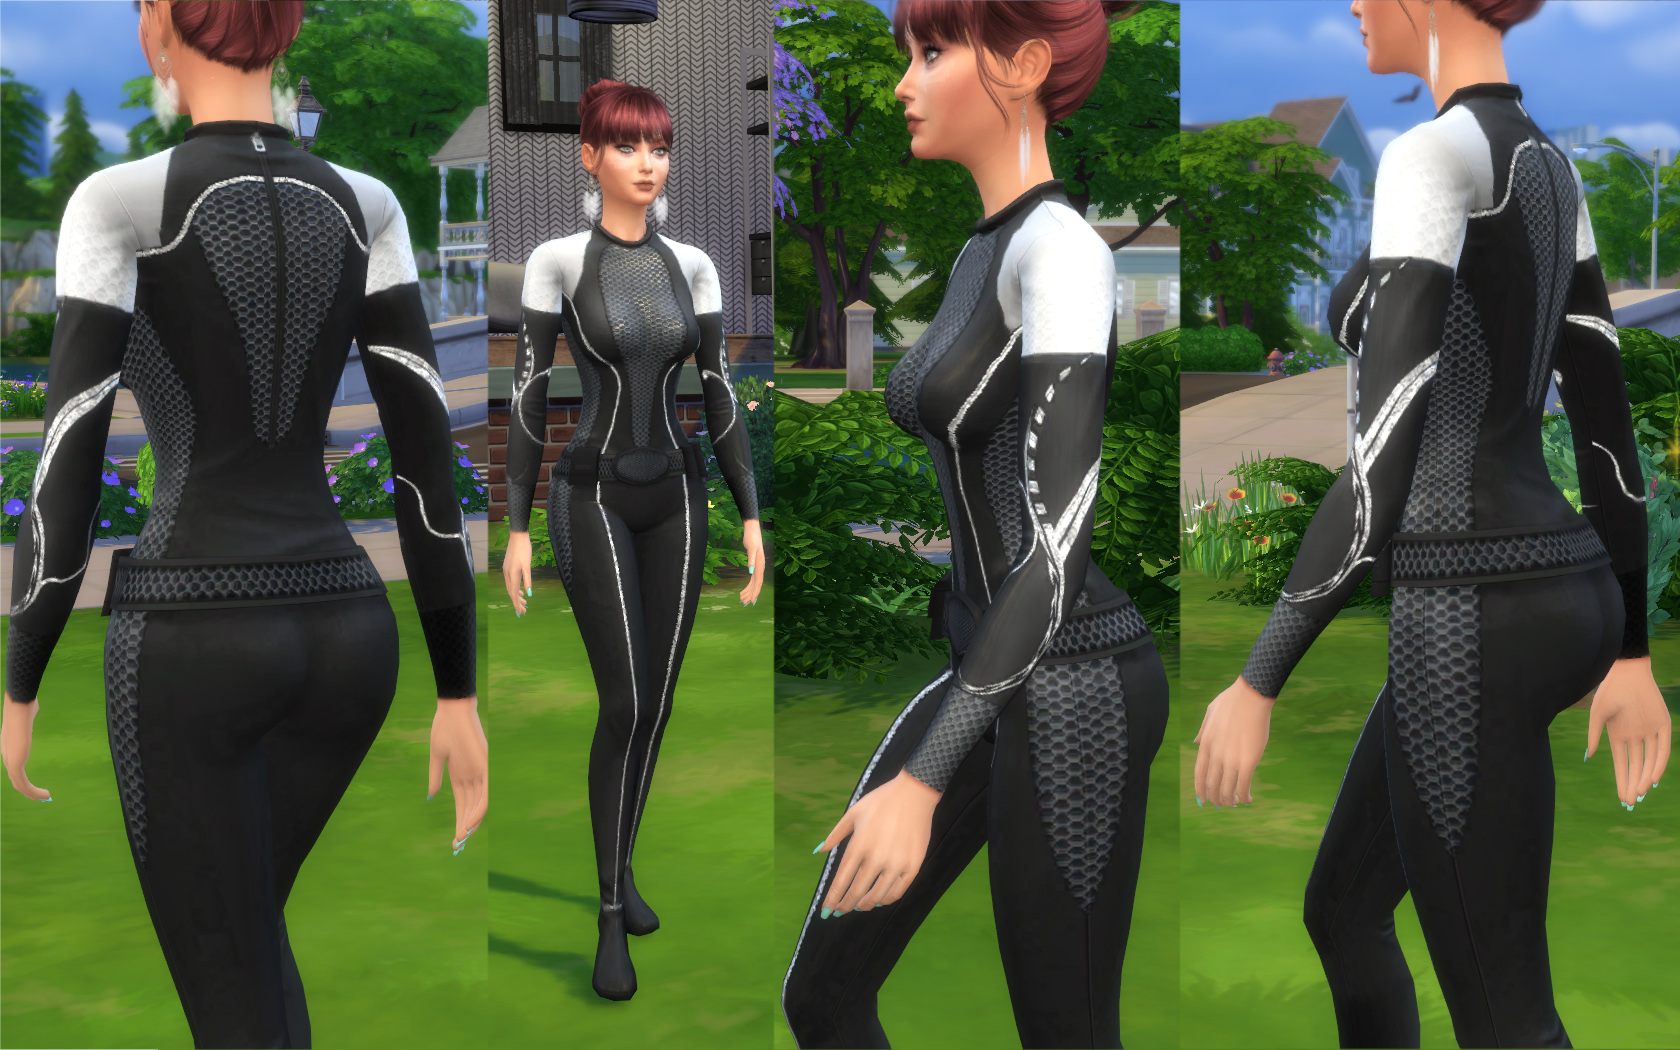 Mod The Sims - The Future Is Here - Female Hunger Games Jumpsuit